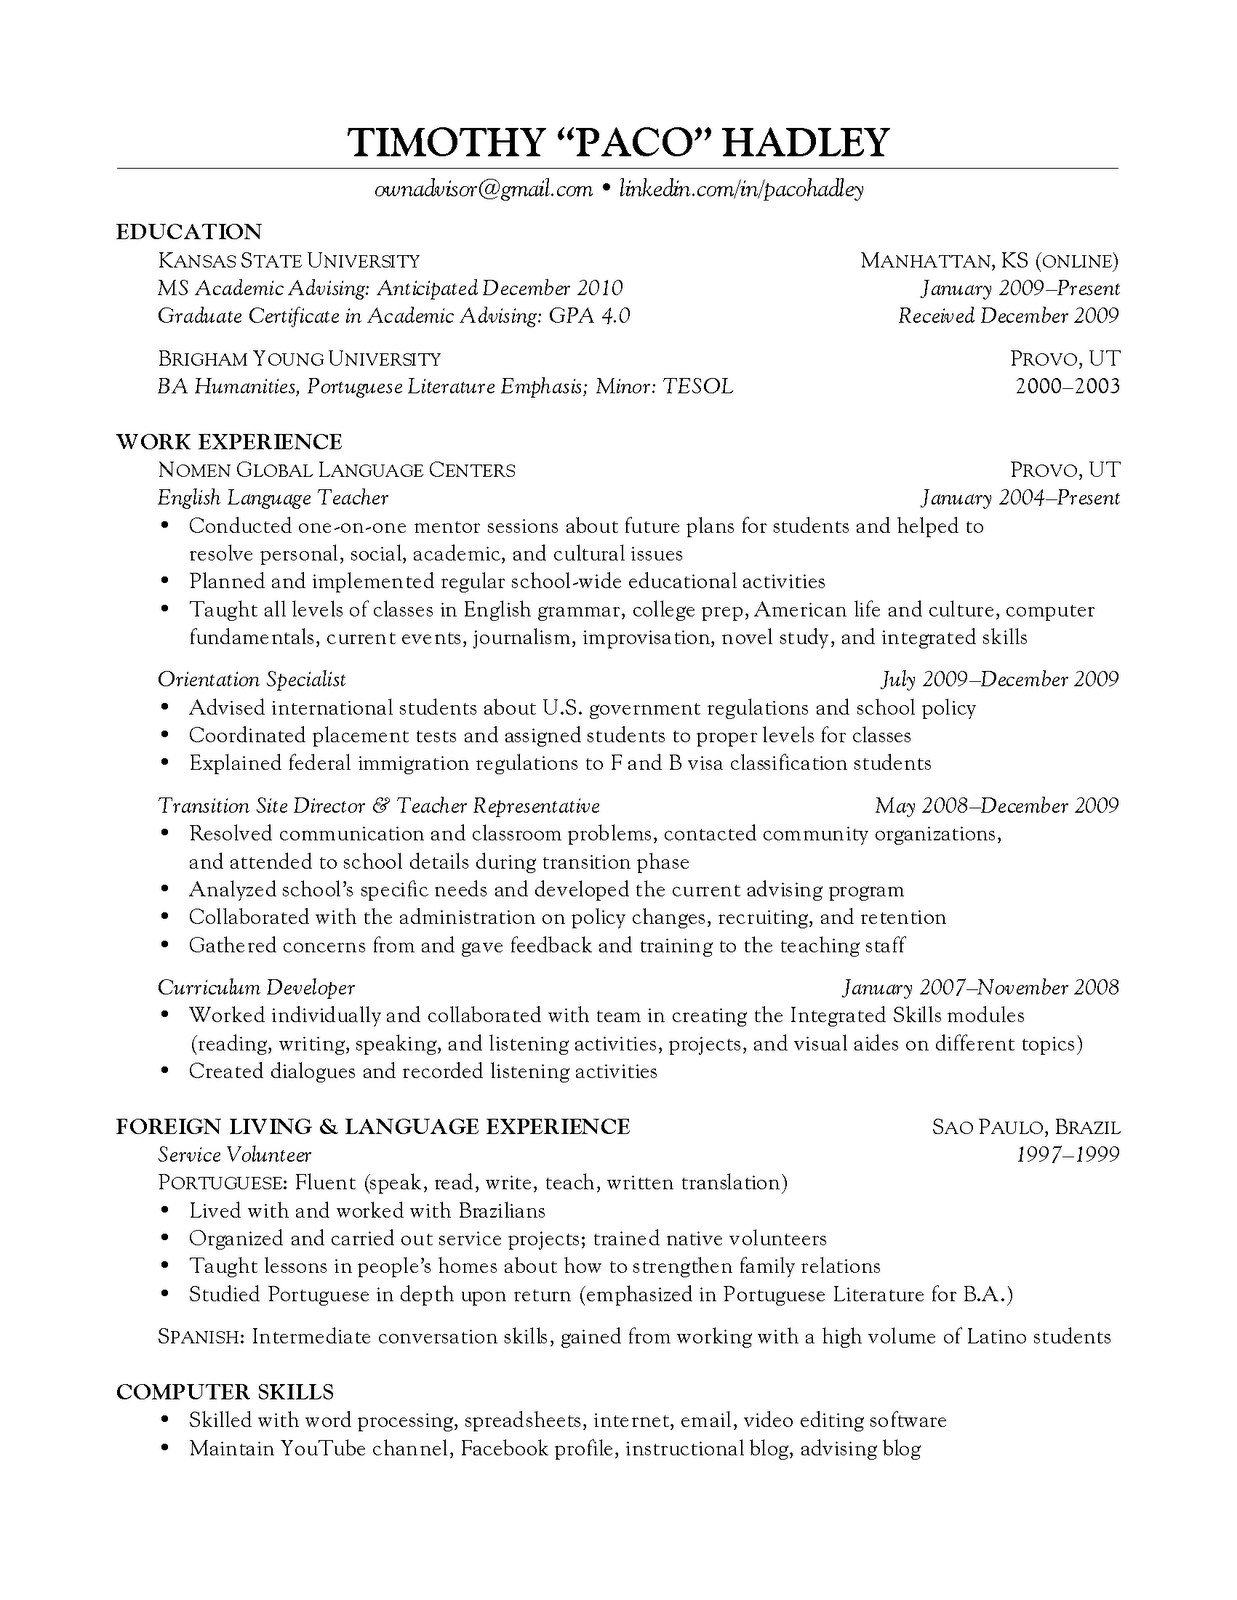 email address on resumes template email address on resumes